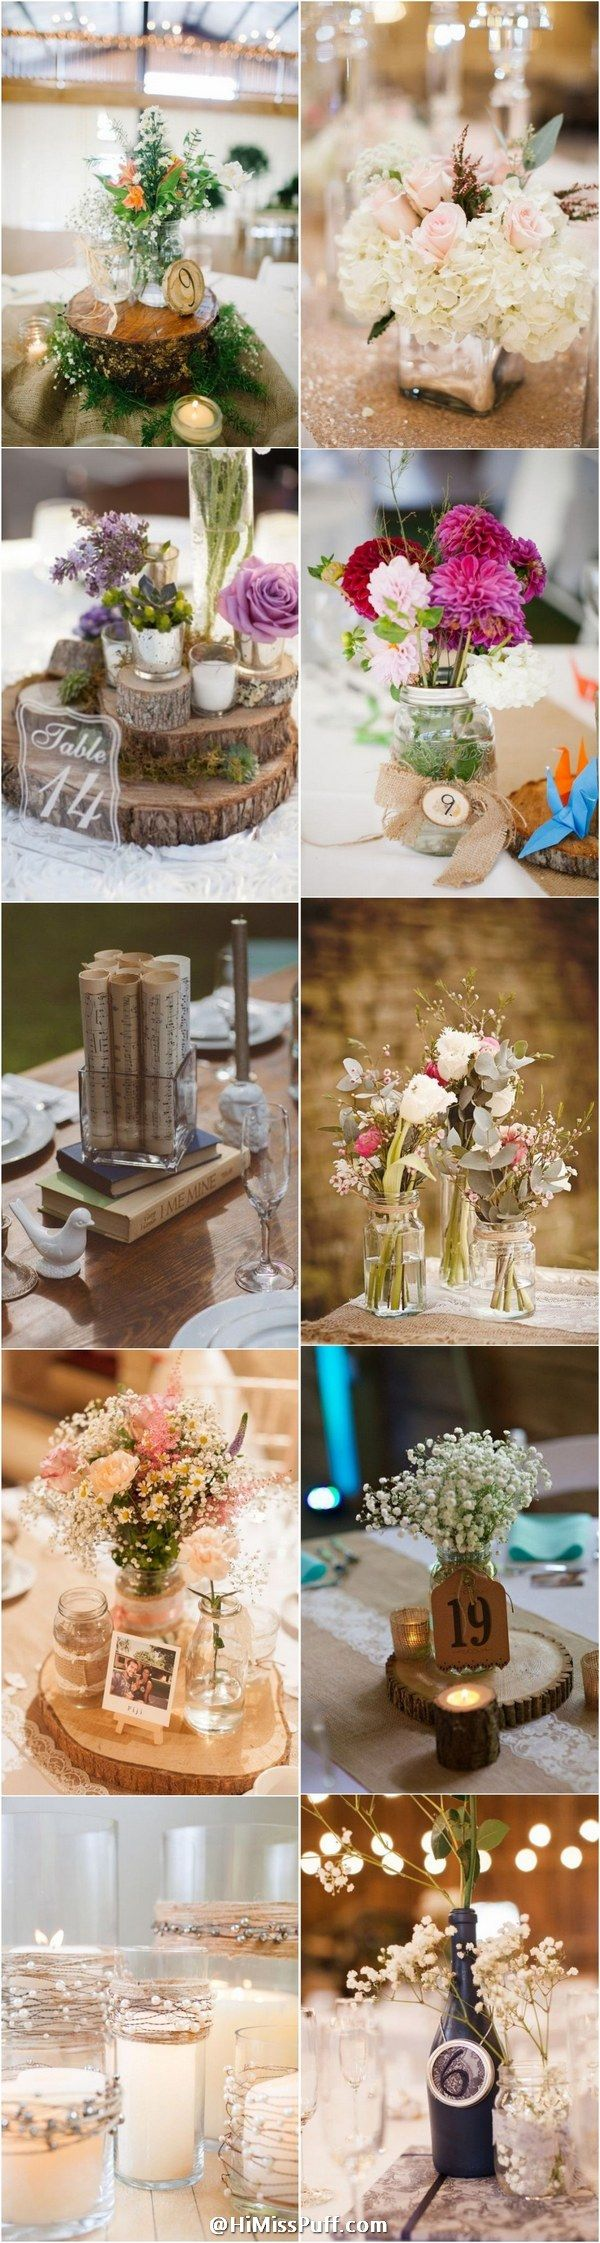 100 Country Rustic Wedding Centerpiece Ideas Country wedding